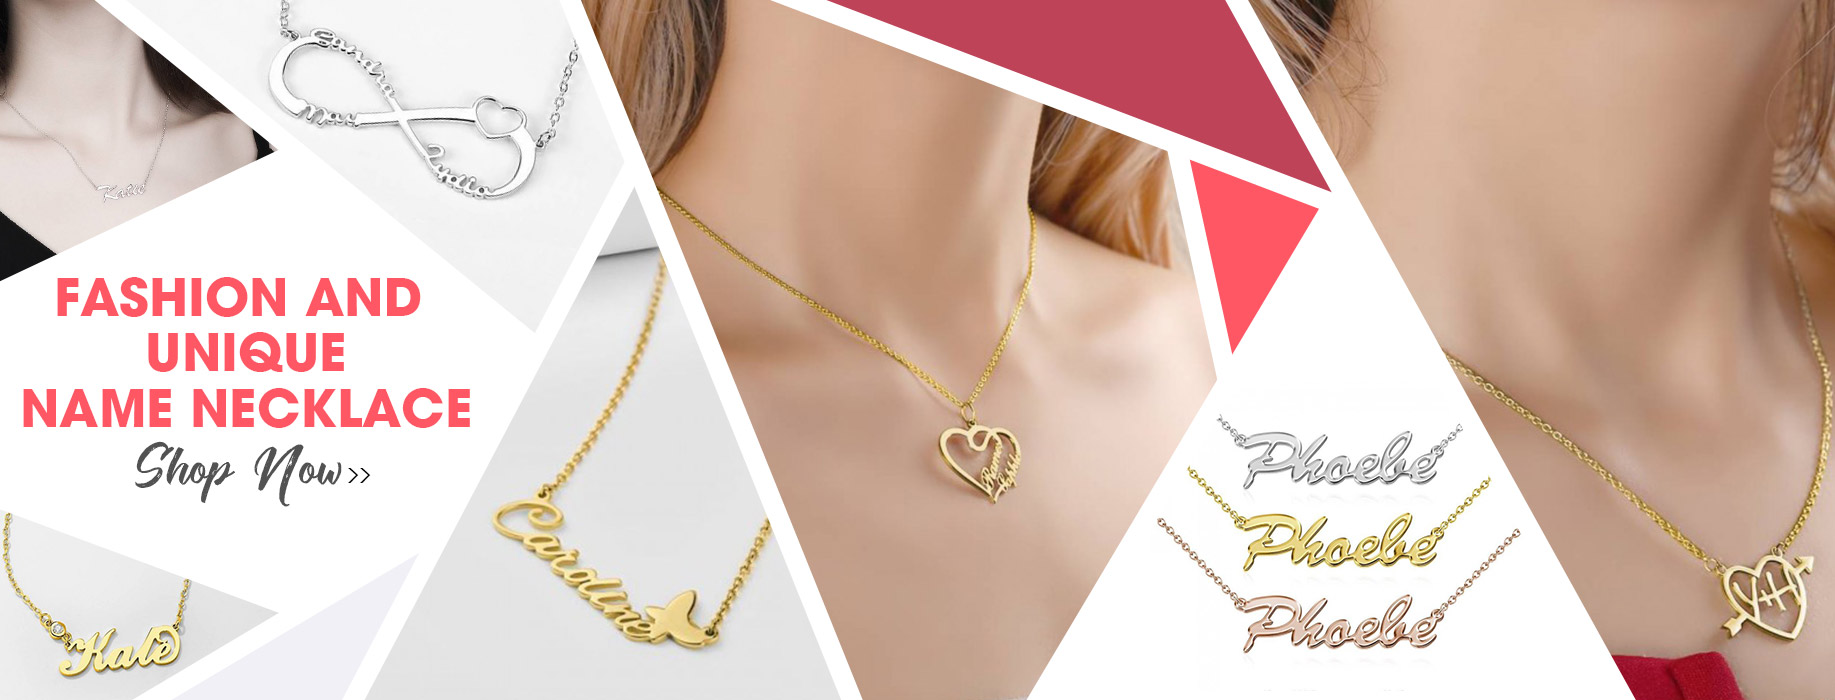 fashion and unique necklace for women